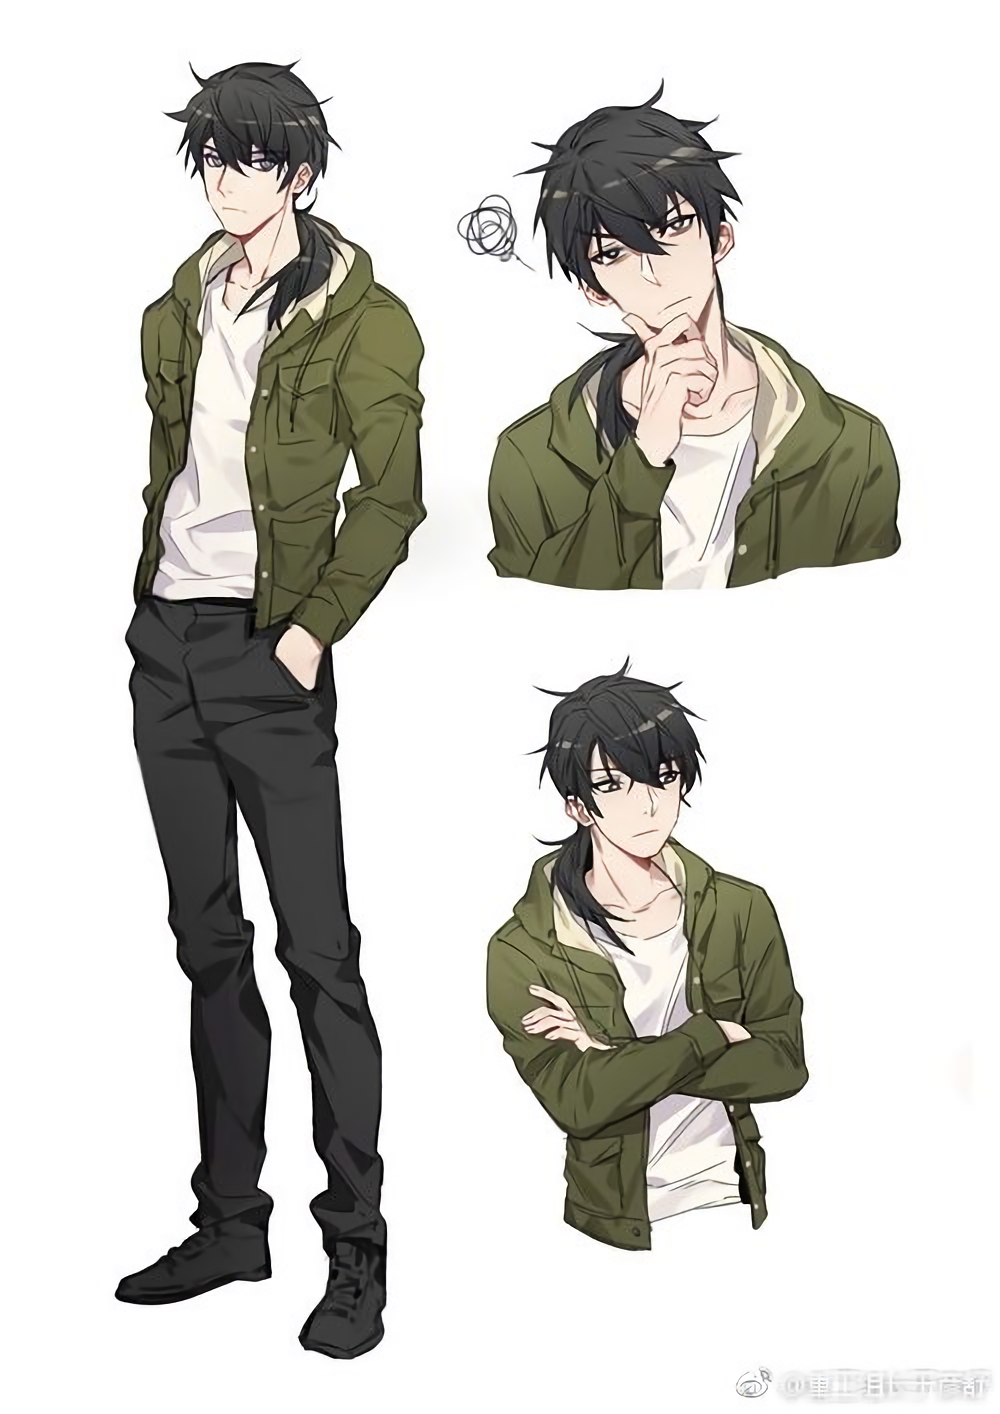 Pin By Nathan Caster On A Year To Date Anime Character Design Character Design Male Character Design